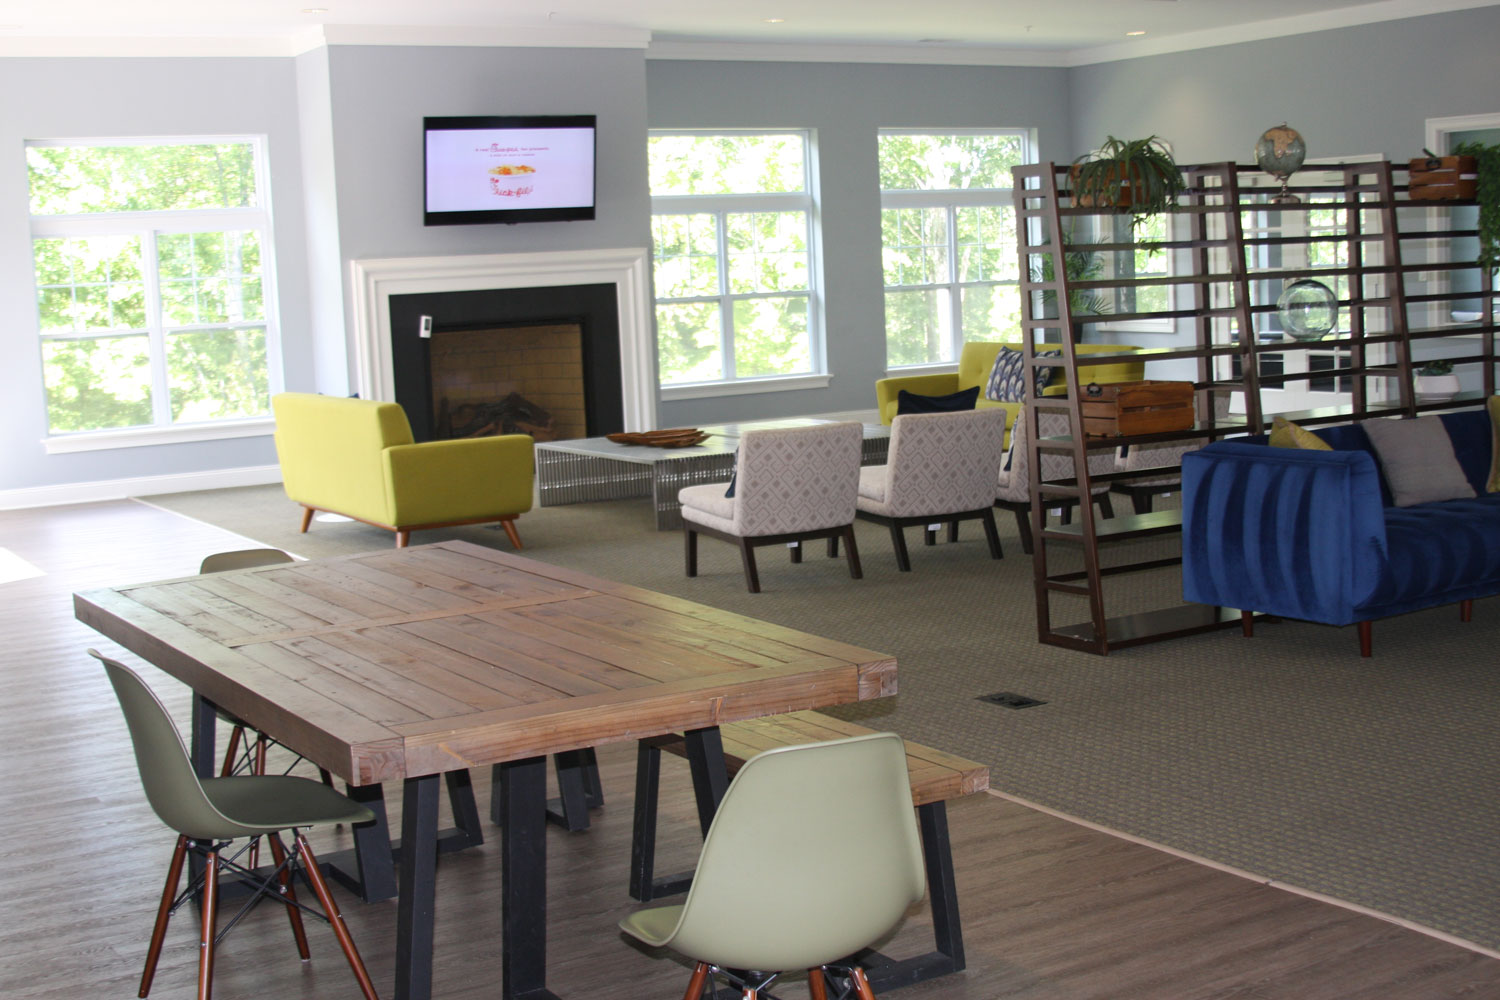 Wi-Fi Lounge at Abbey Lane Apartments in Danbury, Connecticut